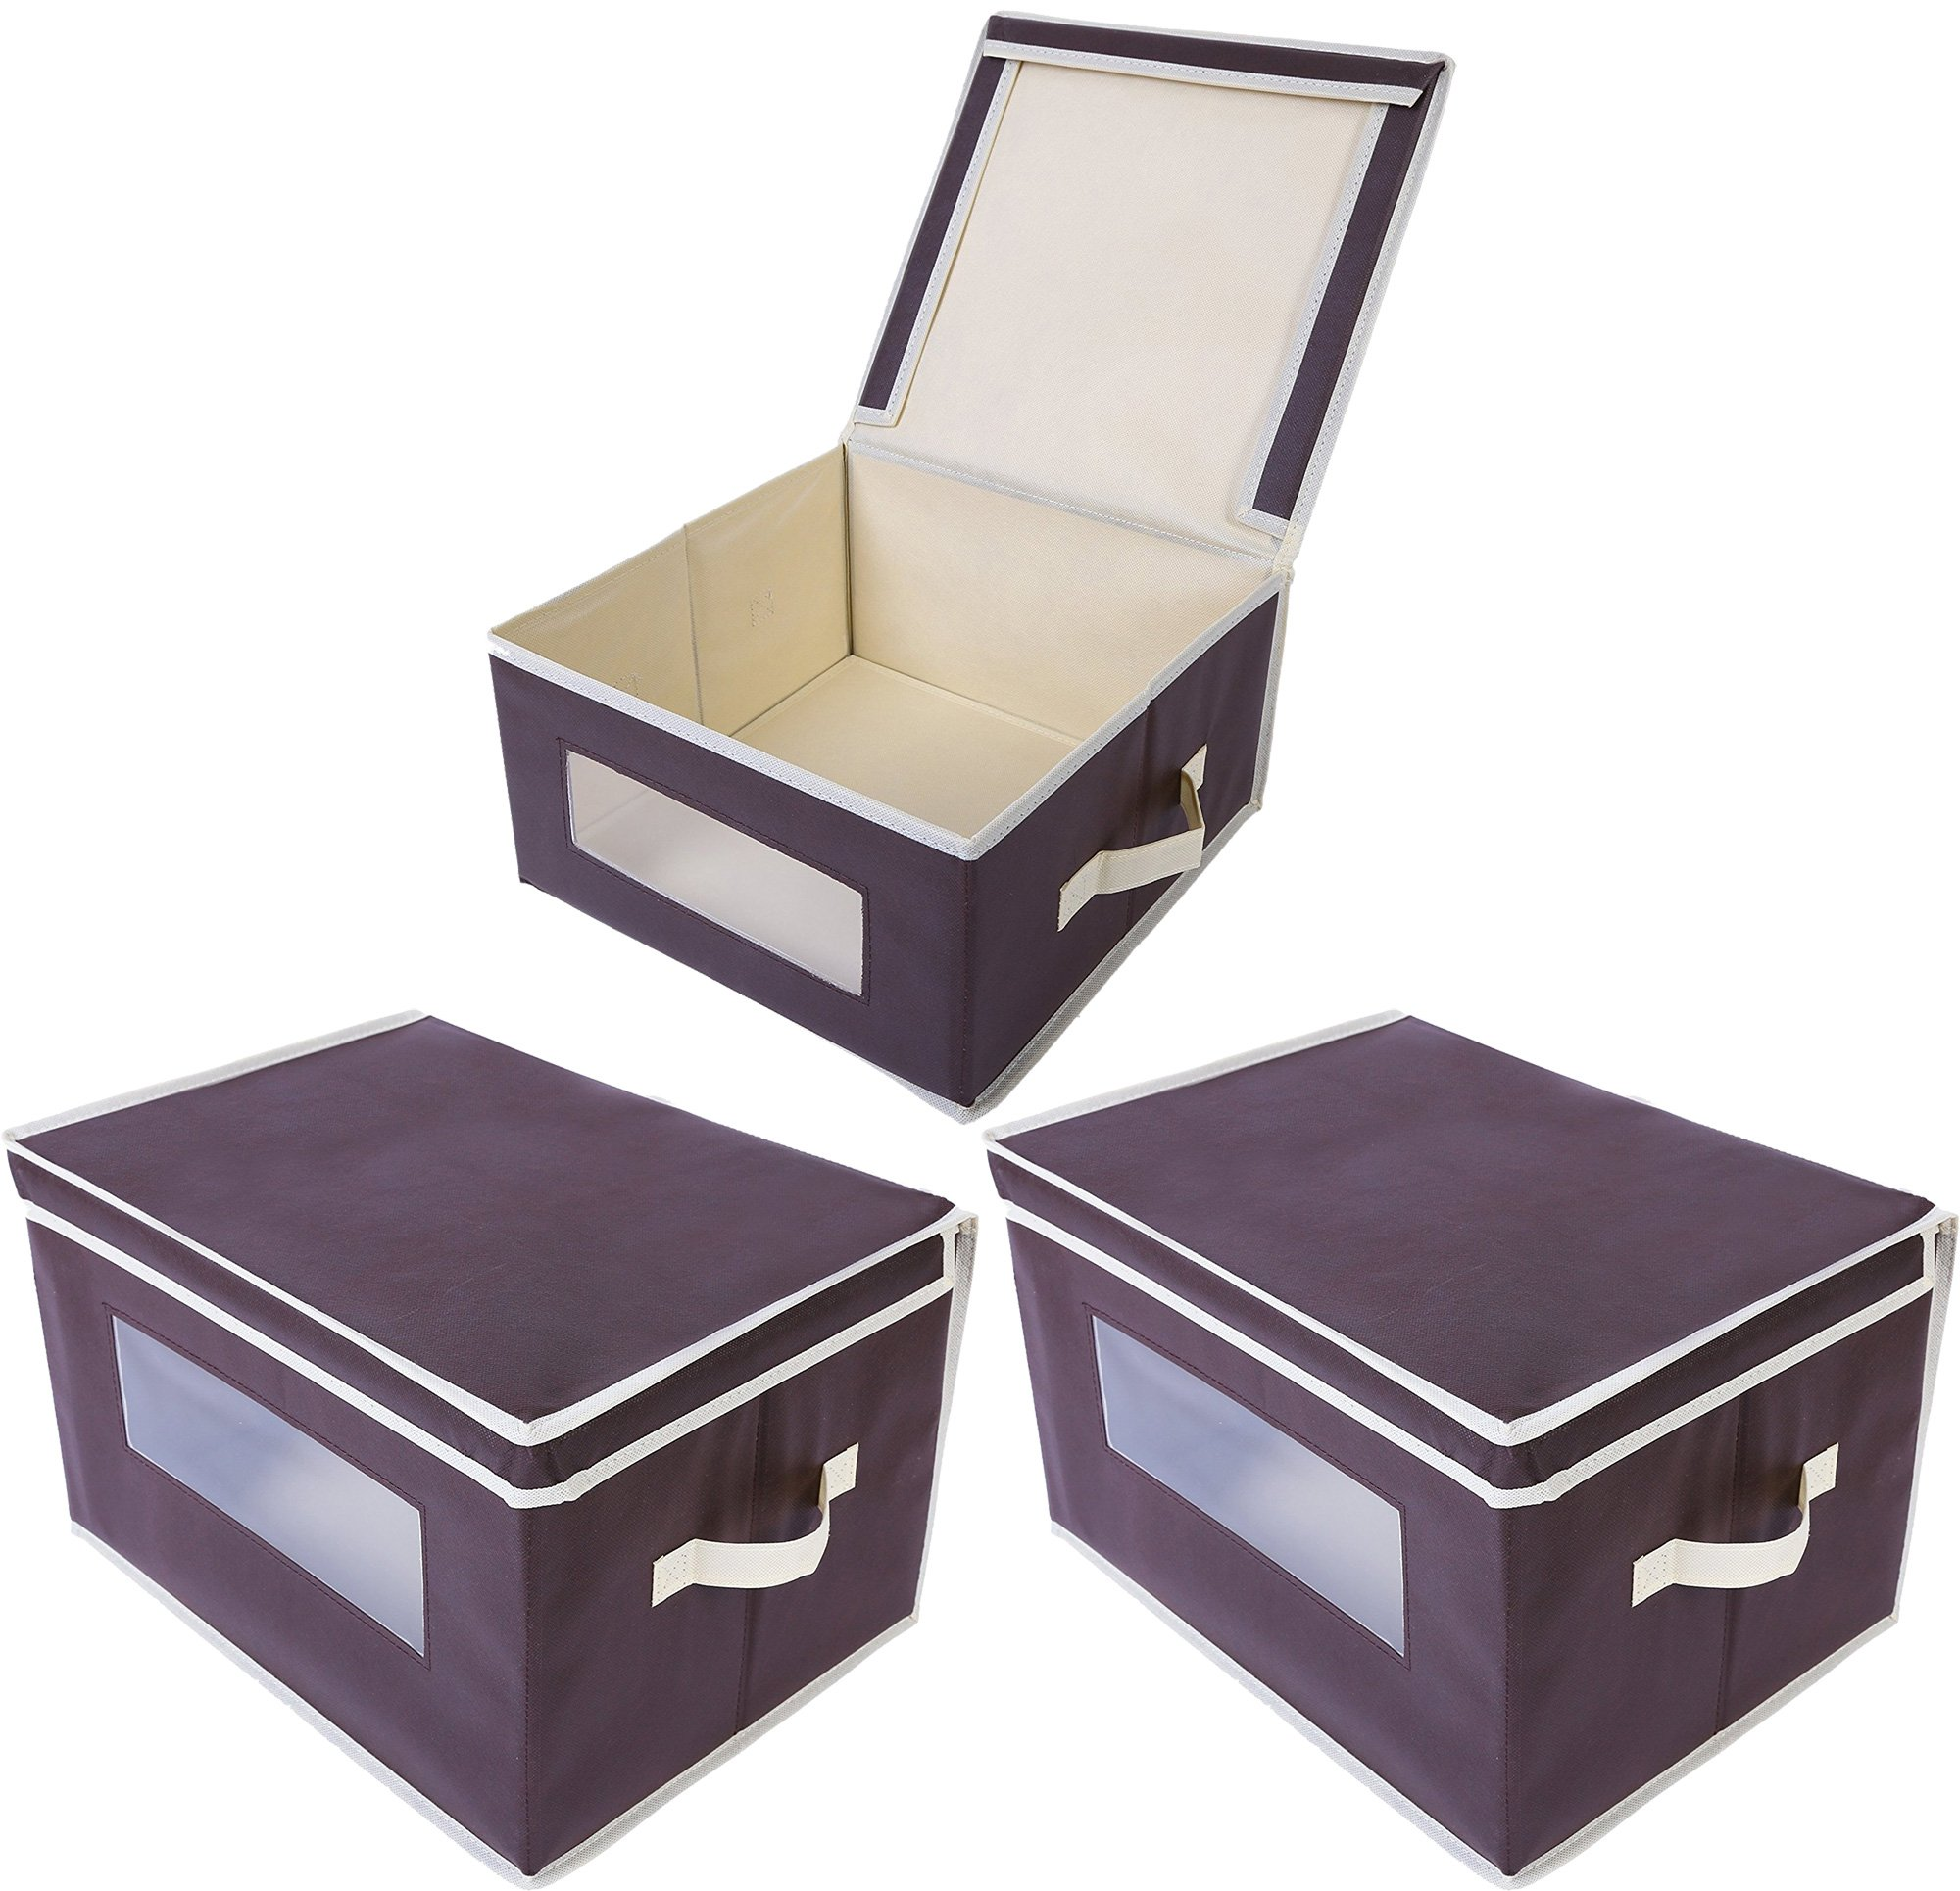 Foldable Fabric Storage Containers / Bins - Organization Cube Boxes with Clear Windows & Lids - for Household Items, Clothing, Office Supplies, & More - Brown/Beige - 3 Pack - 16.25 x 12 x 10.5 Inches